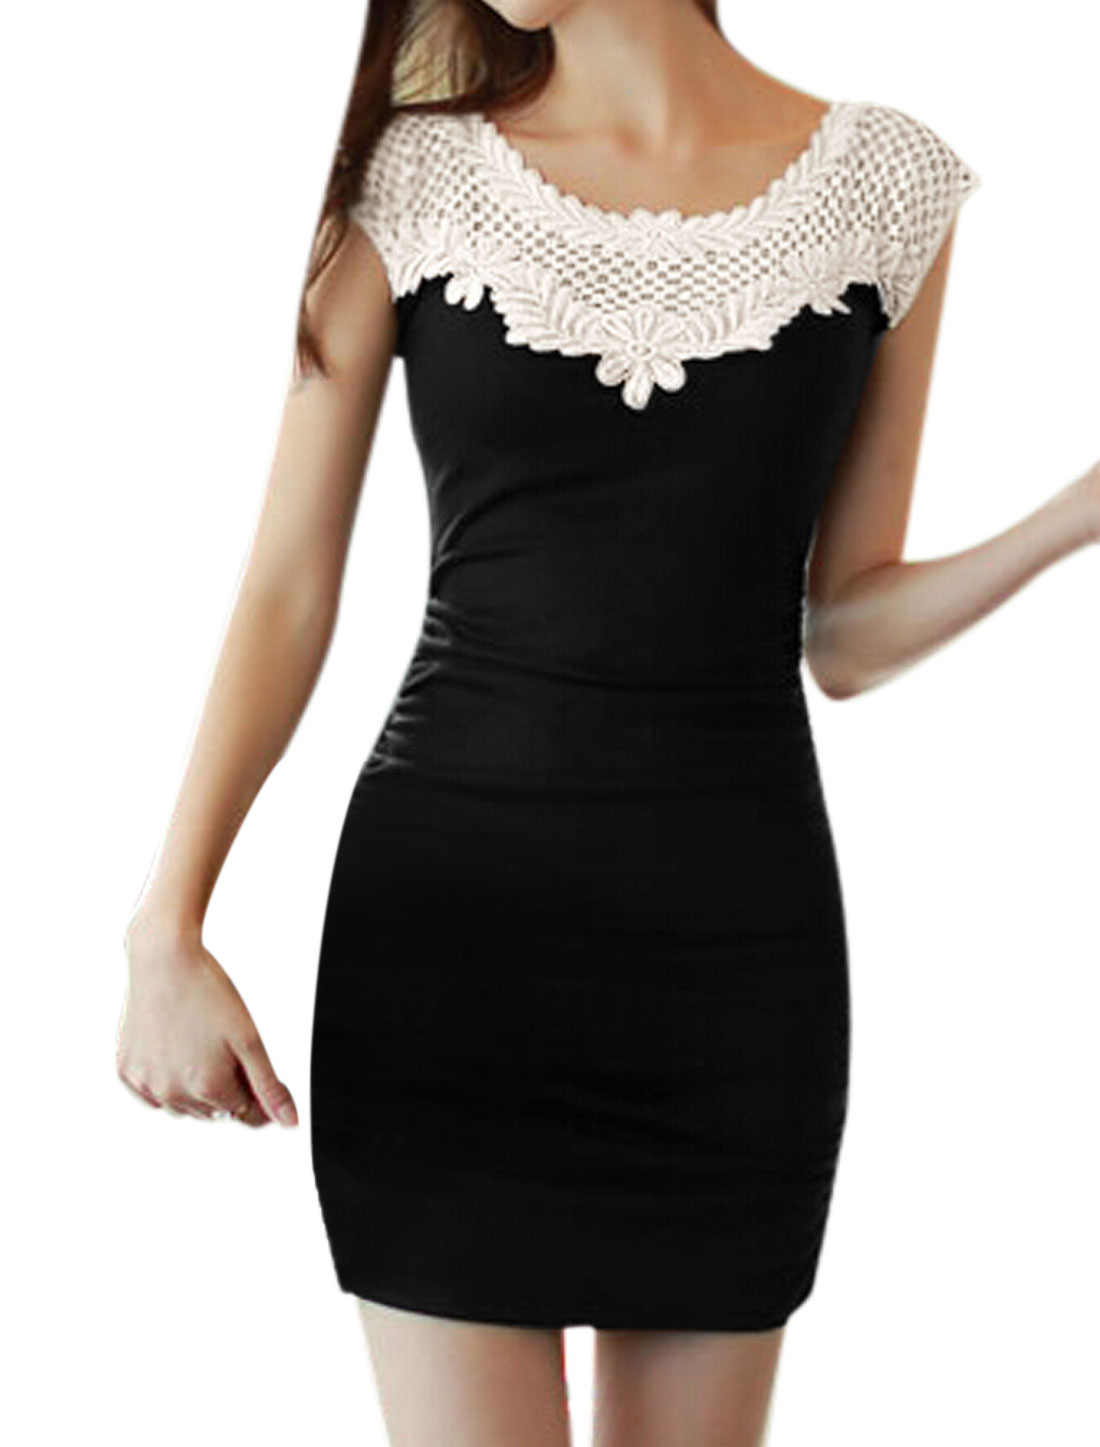 Women Scoop Neck Sleeveless Crochet Flower Decor Sheath Dress Black S